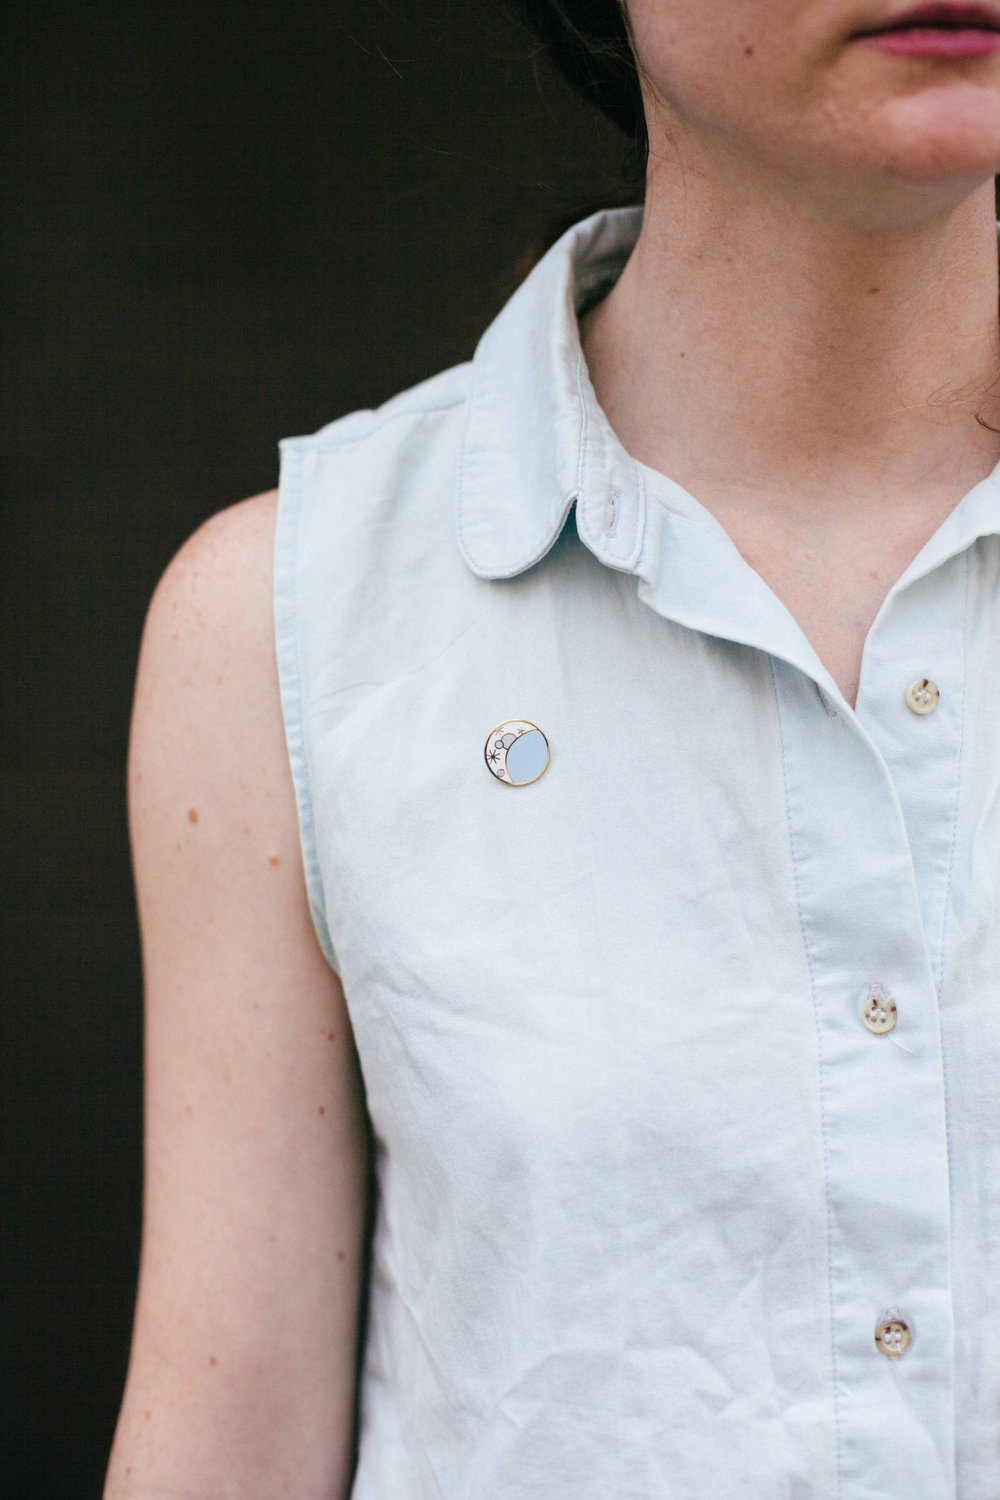 Moon pin  for City of Industry. Modeled by  Keeley  - July 2014.